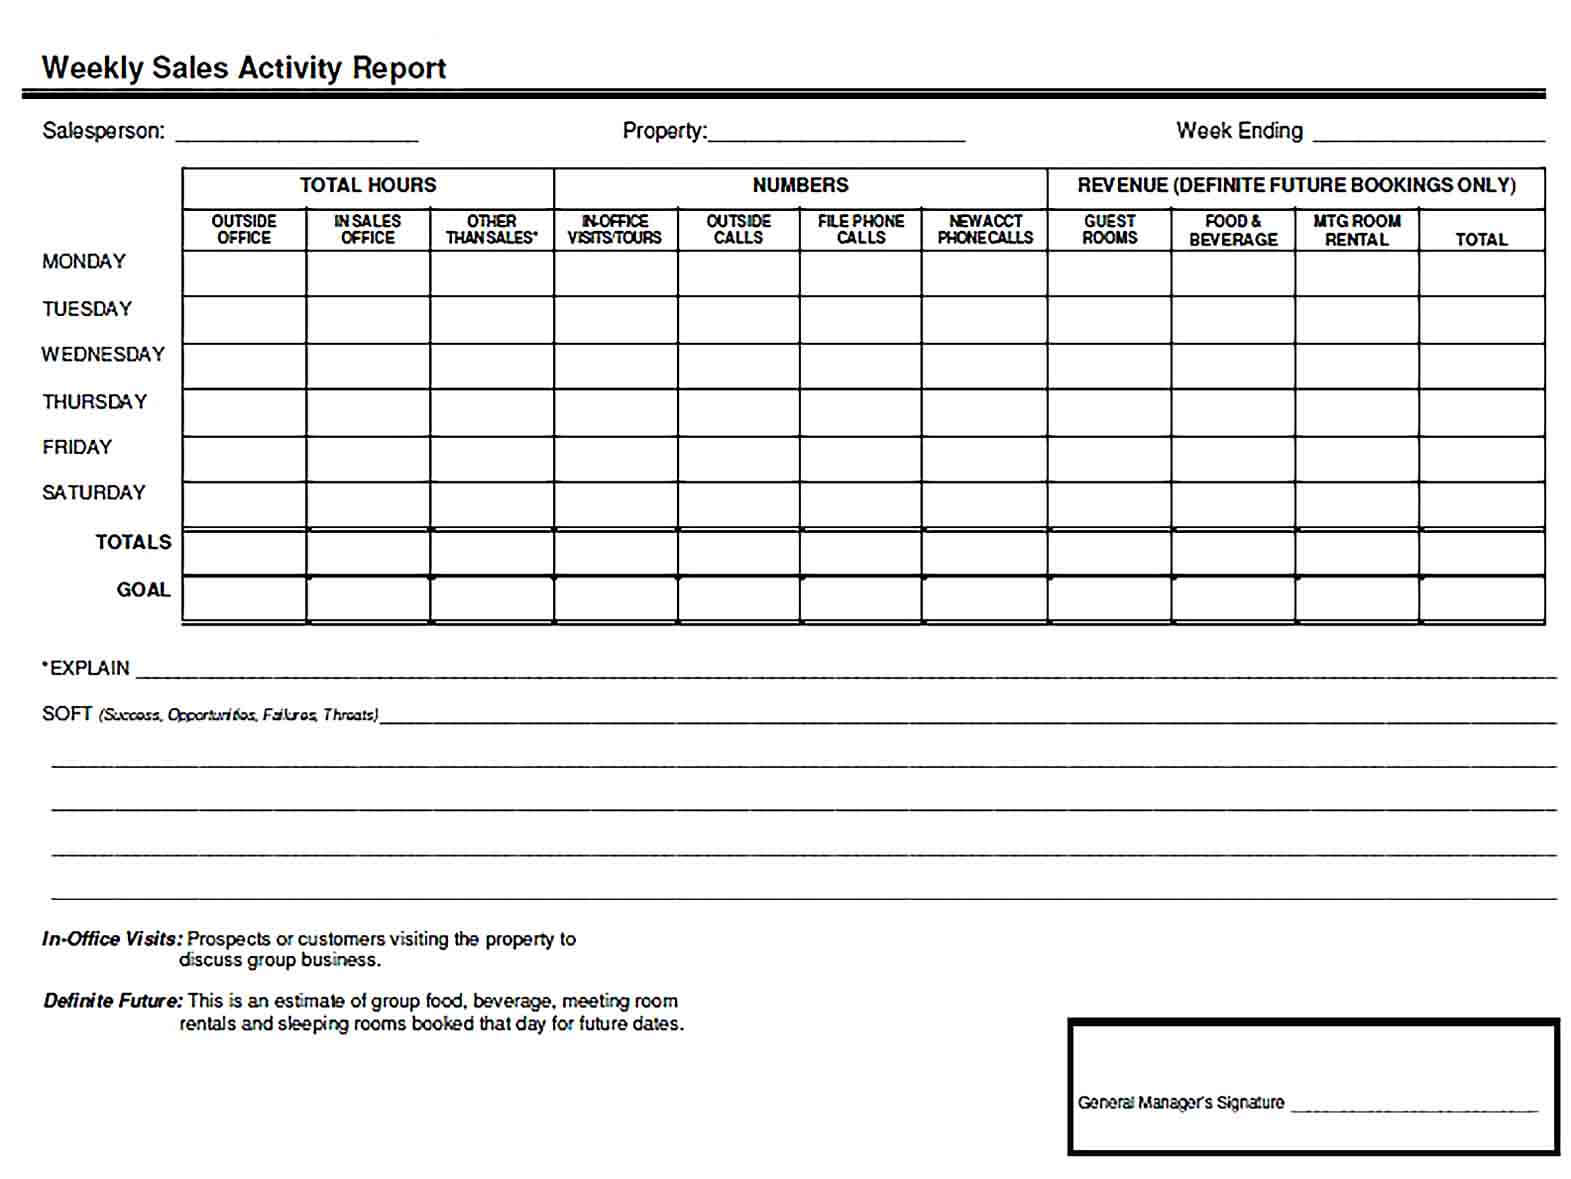 Sample Weekly Sales Activity Report Template